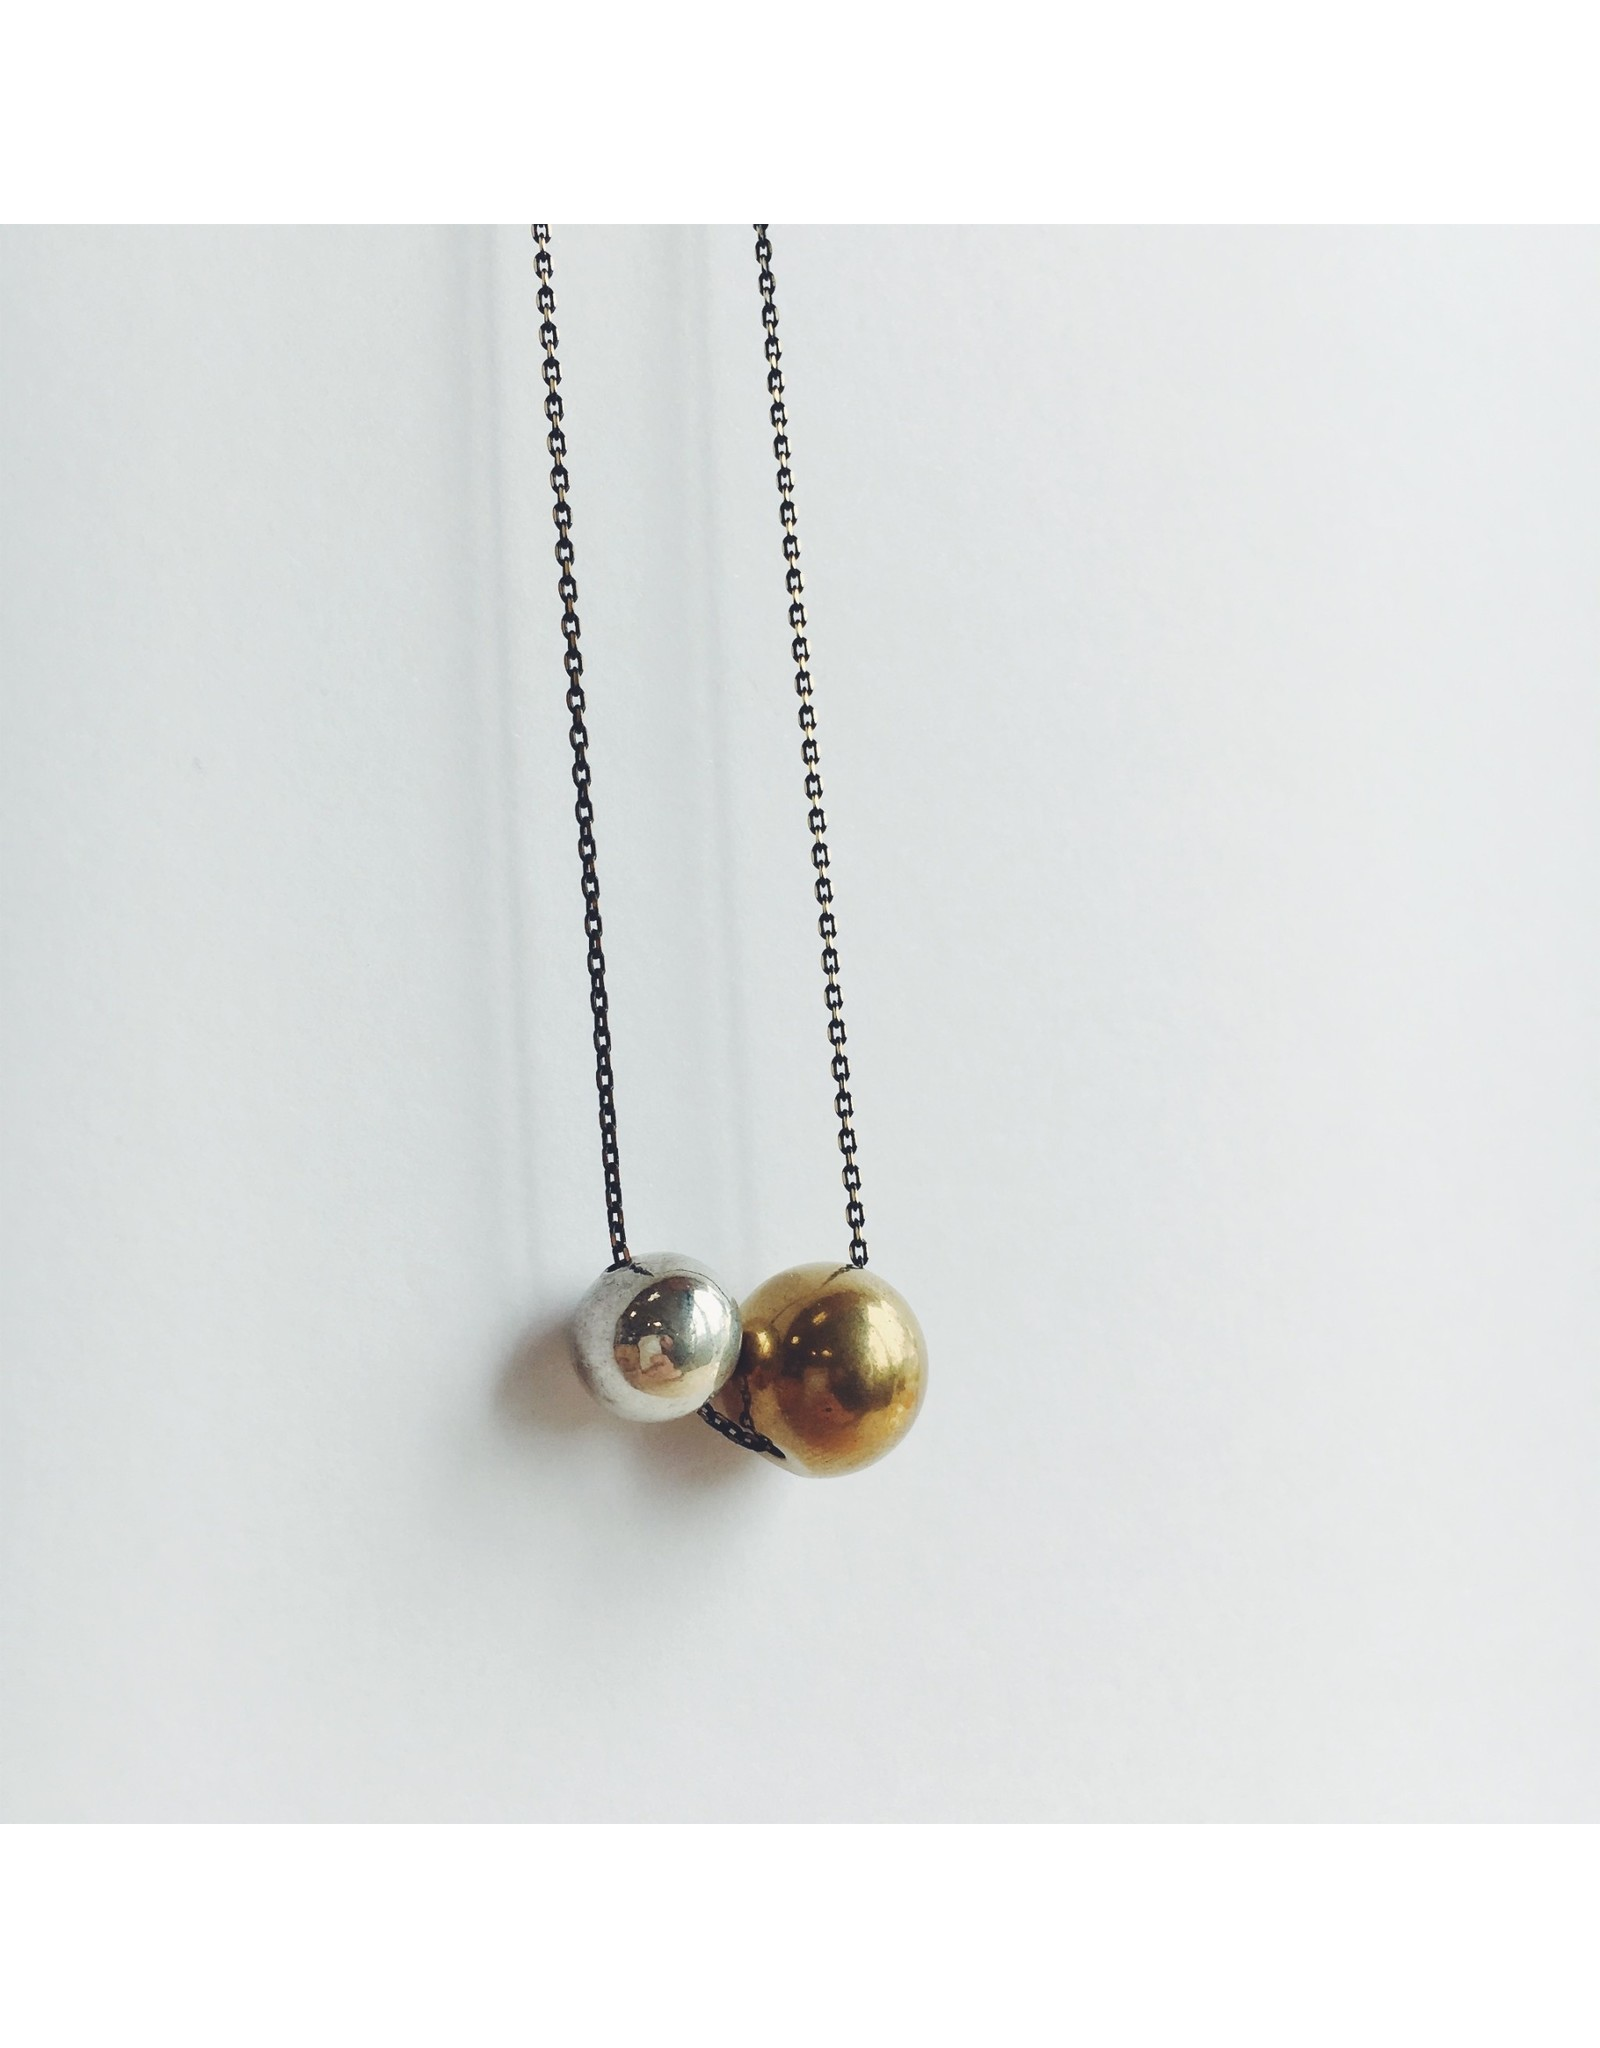 Brass Bead with Chrome Bead on Black Chain Necklace equi/004